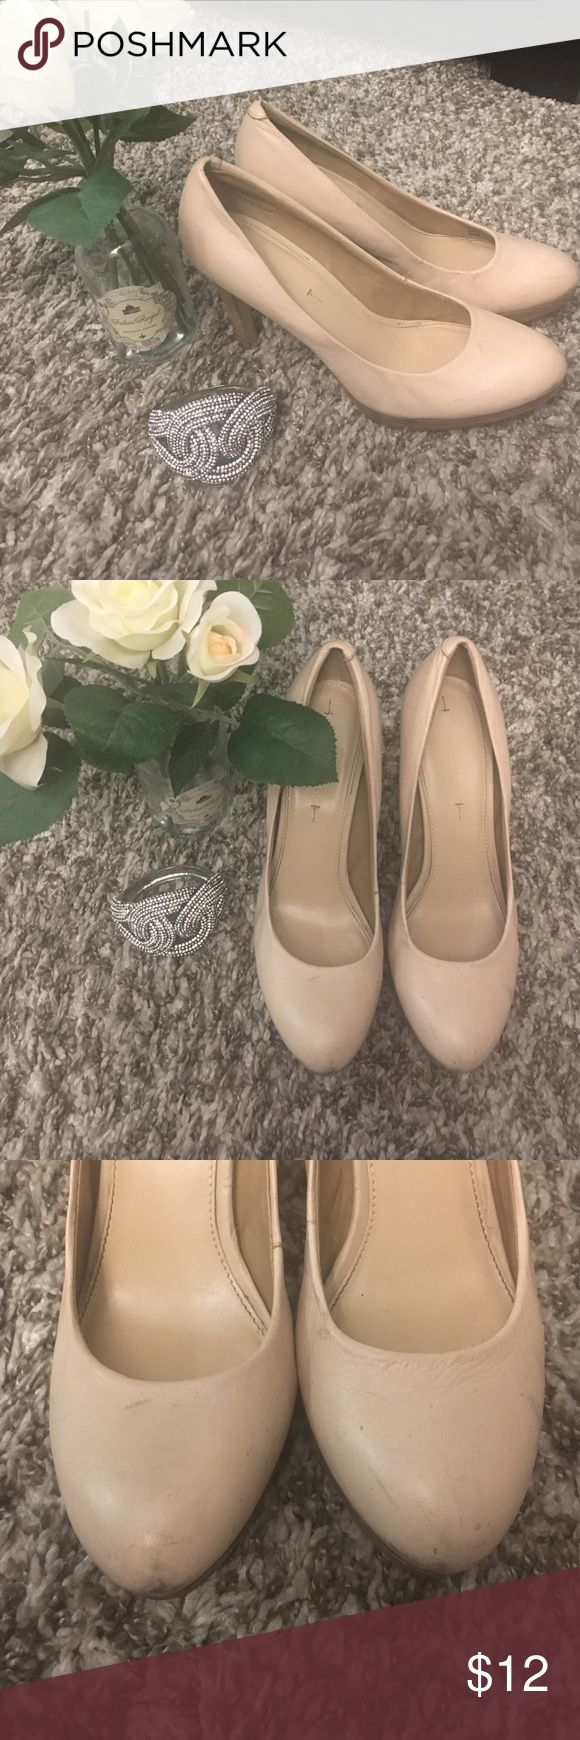 "Banana Republic cream high heel pumps size 8.5 Banana Republic cream high heel pumps size 8.5. Made of leather with a 4"" platform heel. Well loved and lots of signs of wear given the cream color (scuffs) so priced accordingly. Banana Republic Shoes Heels"